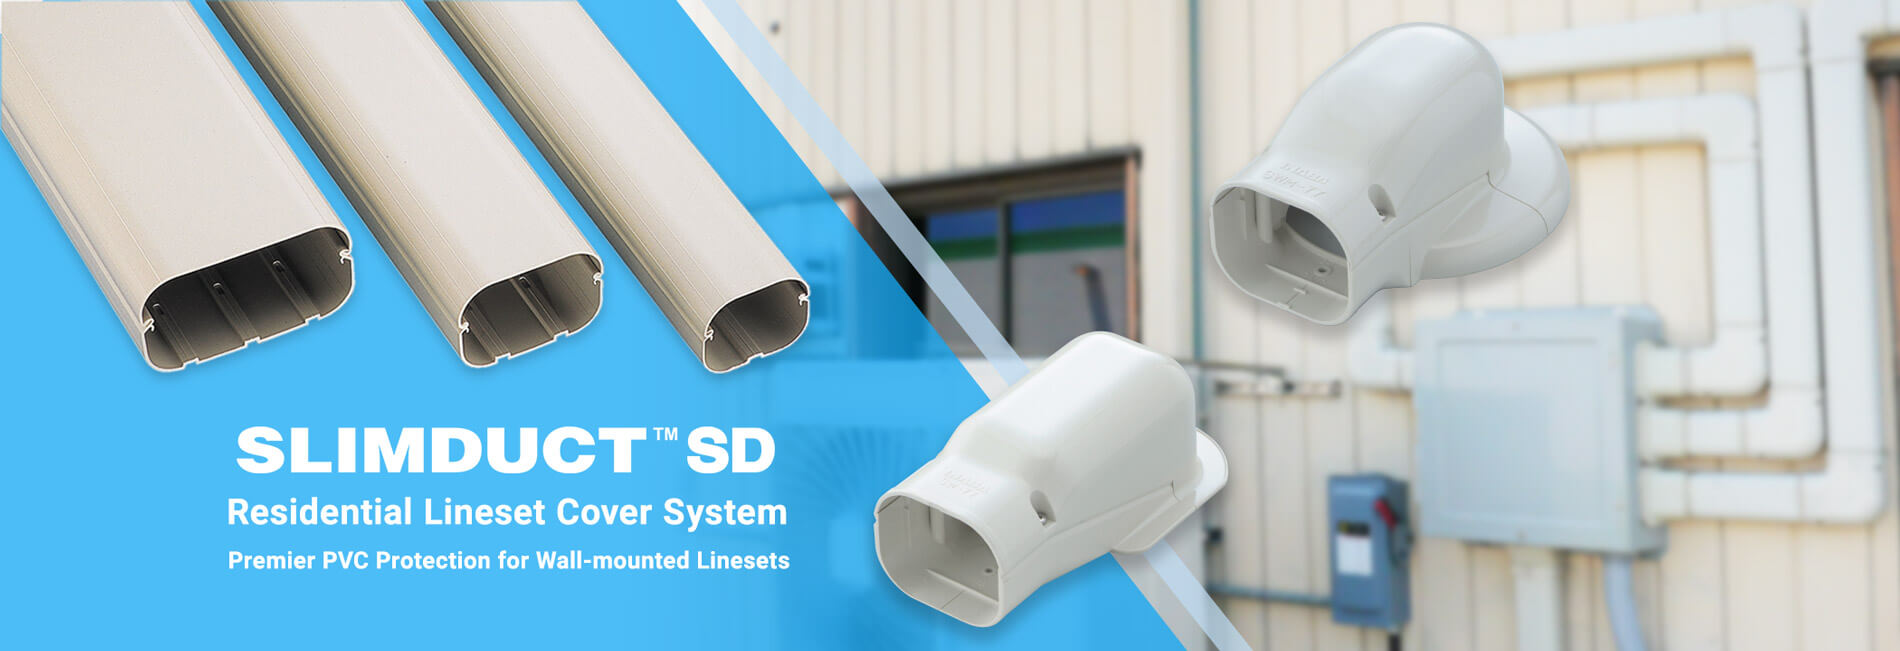 SLIMDUCT SD | Residential Lineset Cover System | Premier PVC Protection for Wall-mounted Linesets